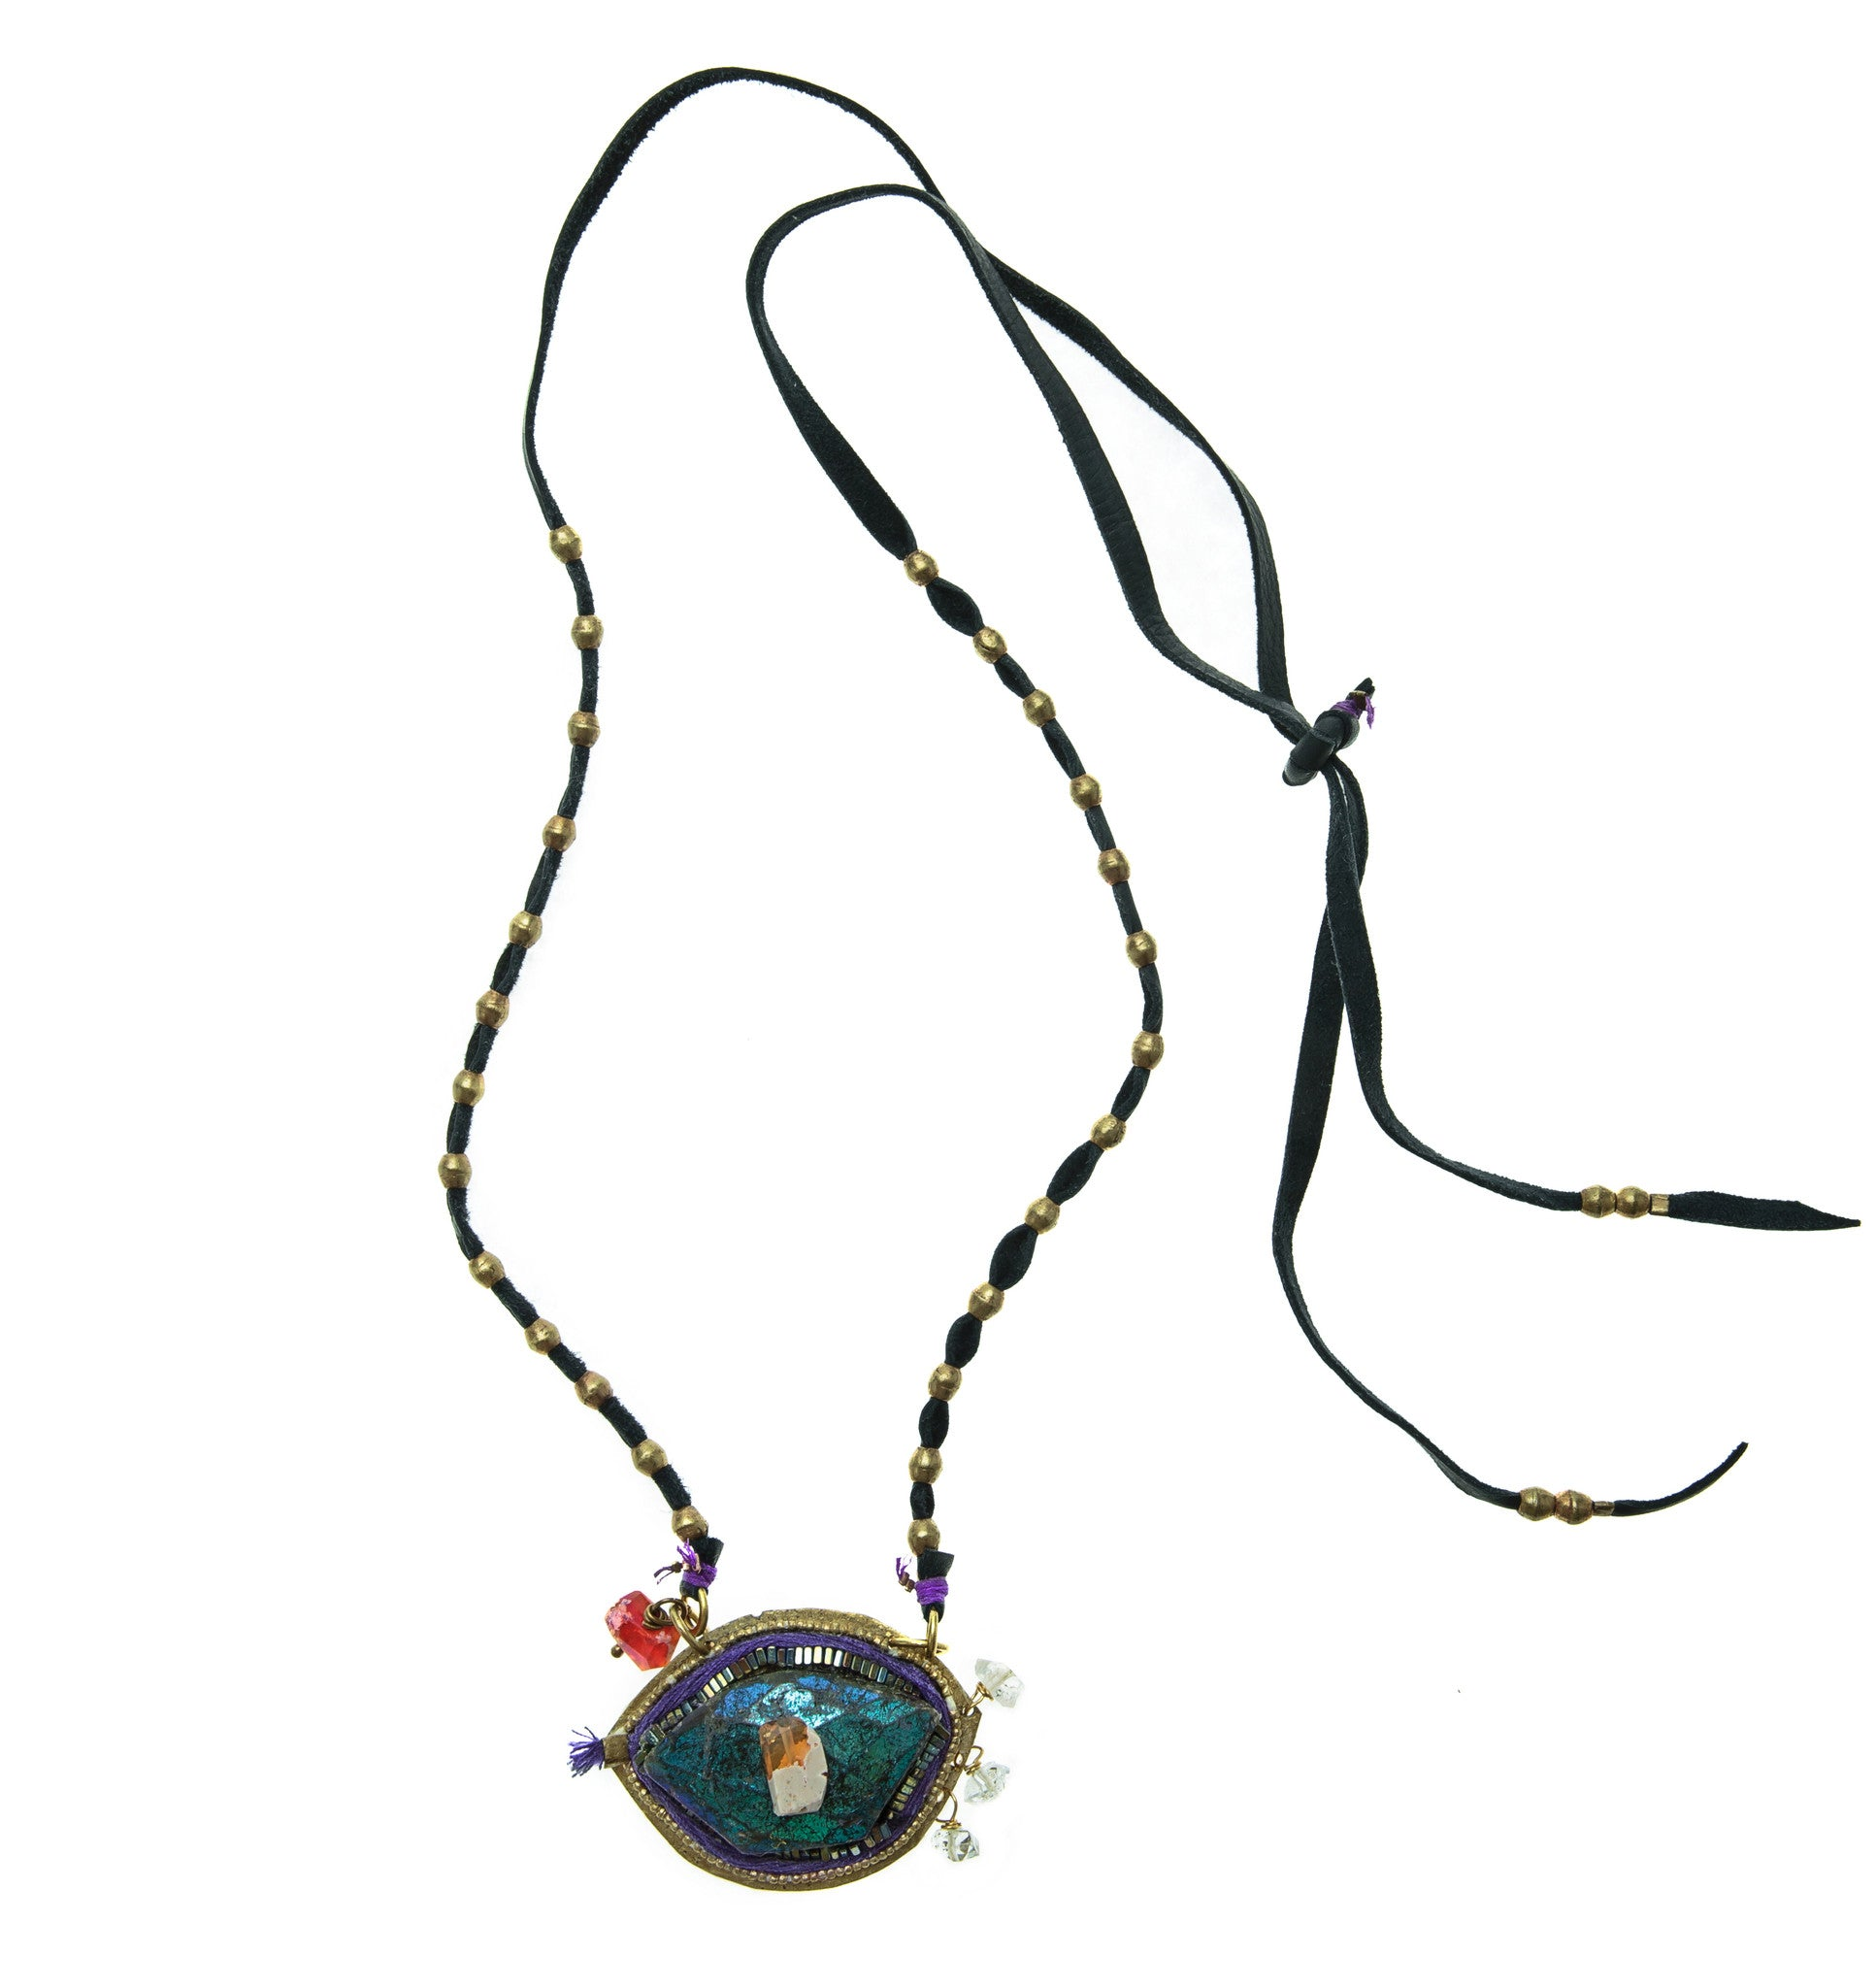 Cosmic Eye Necklace